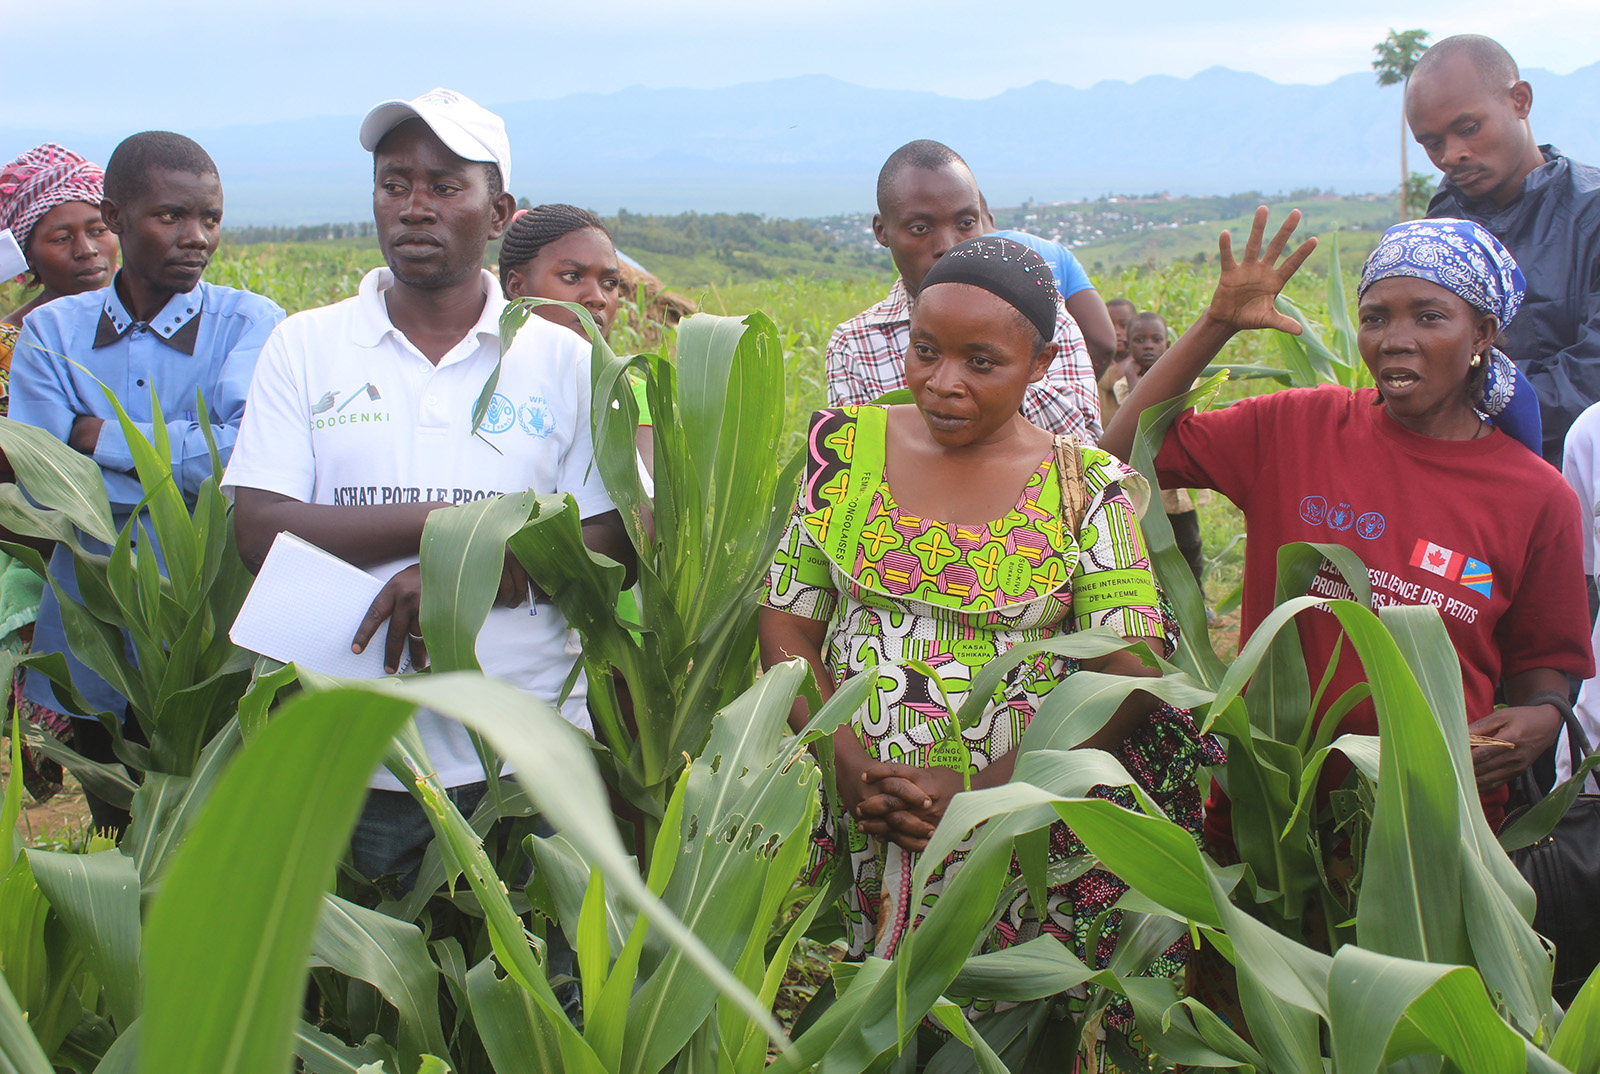 FAO and WFP Emergency and Resilience Directors' mission to the Democratic Republic of the Congo